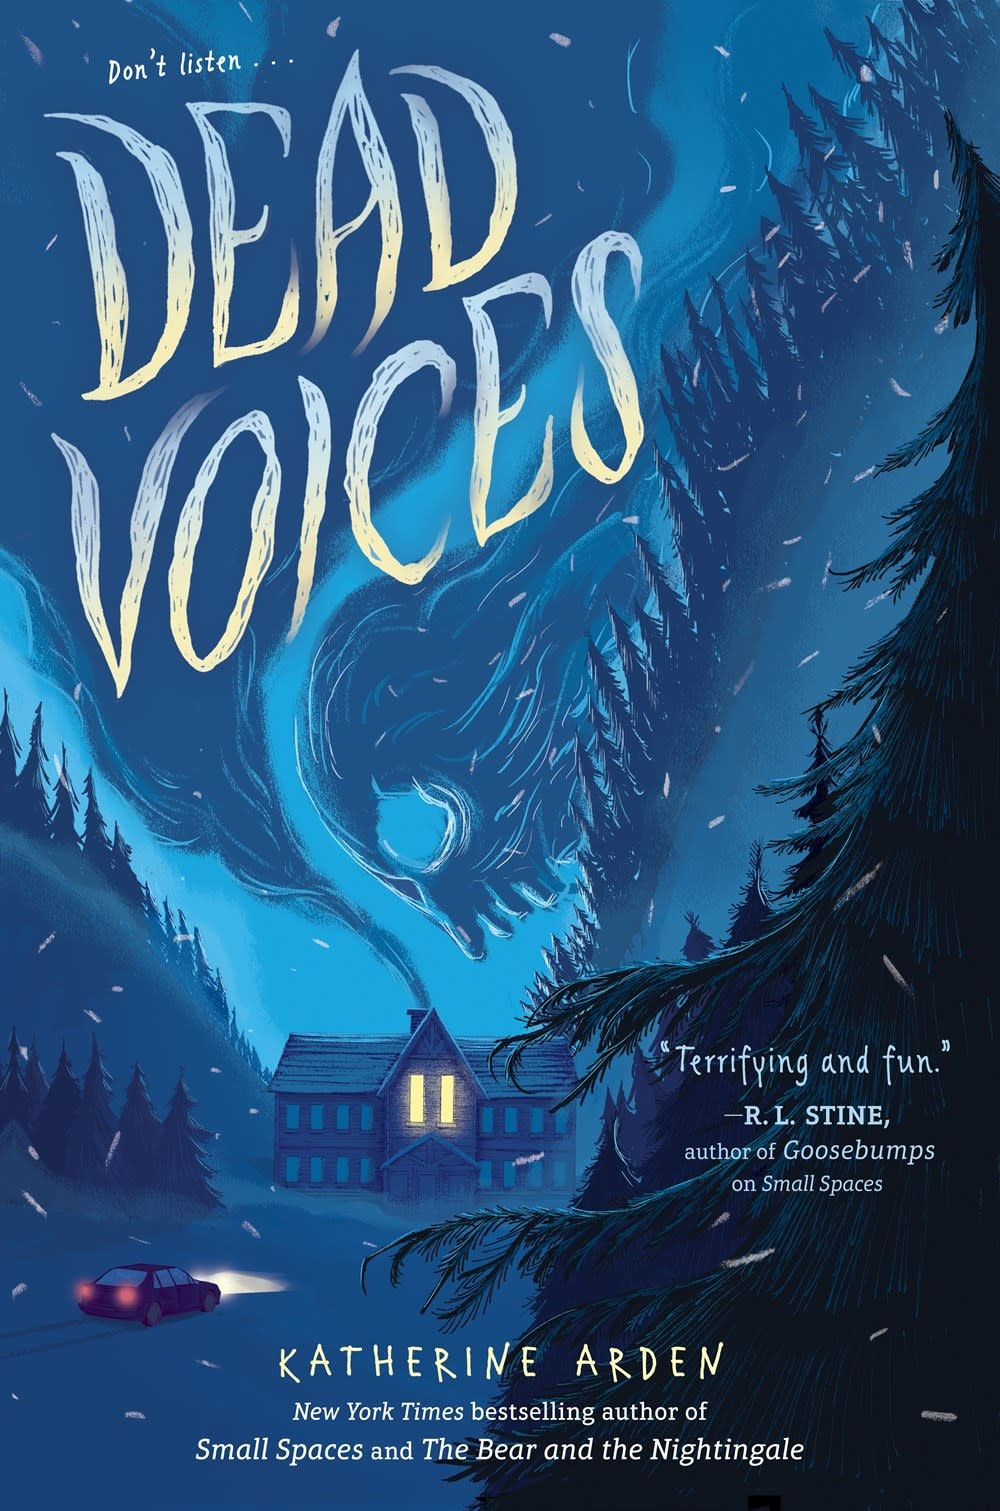 G.P. Putnam's Sons Books for Young Readers Dead Voices